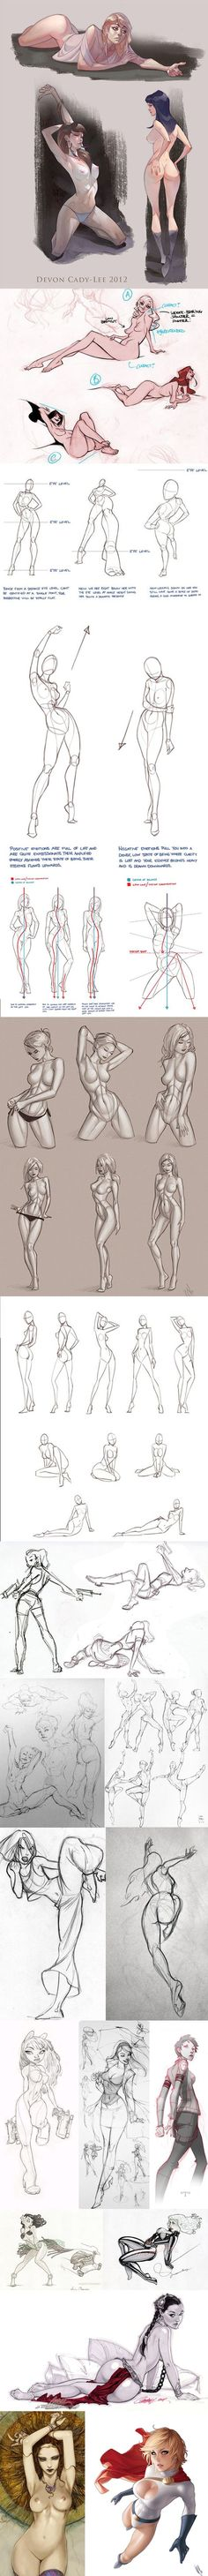 great pose info - female Body study - anatomical reference - woman in different…